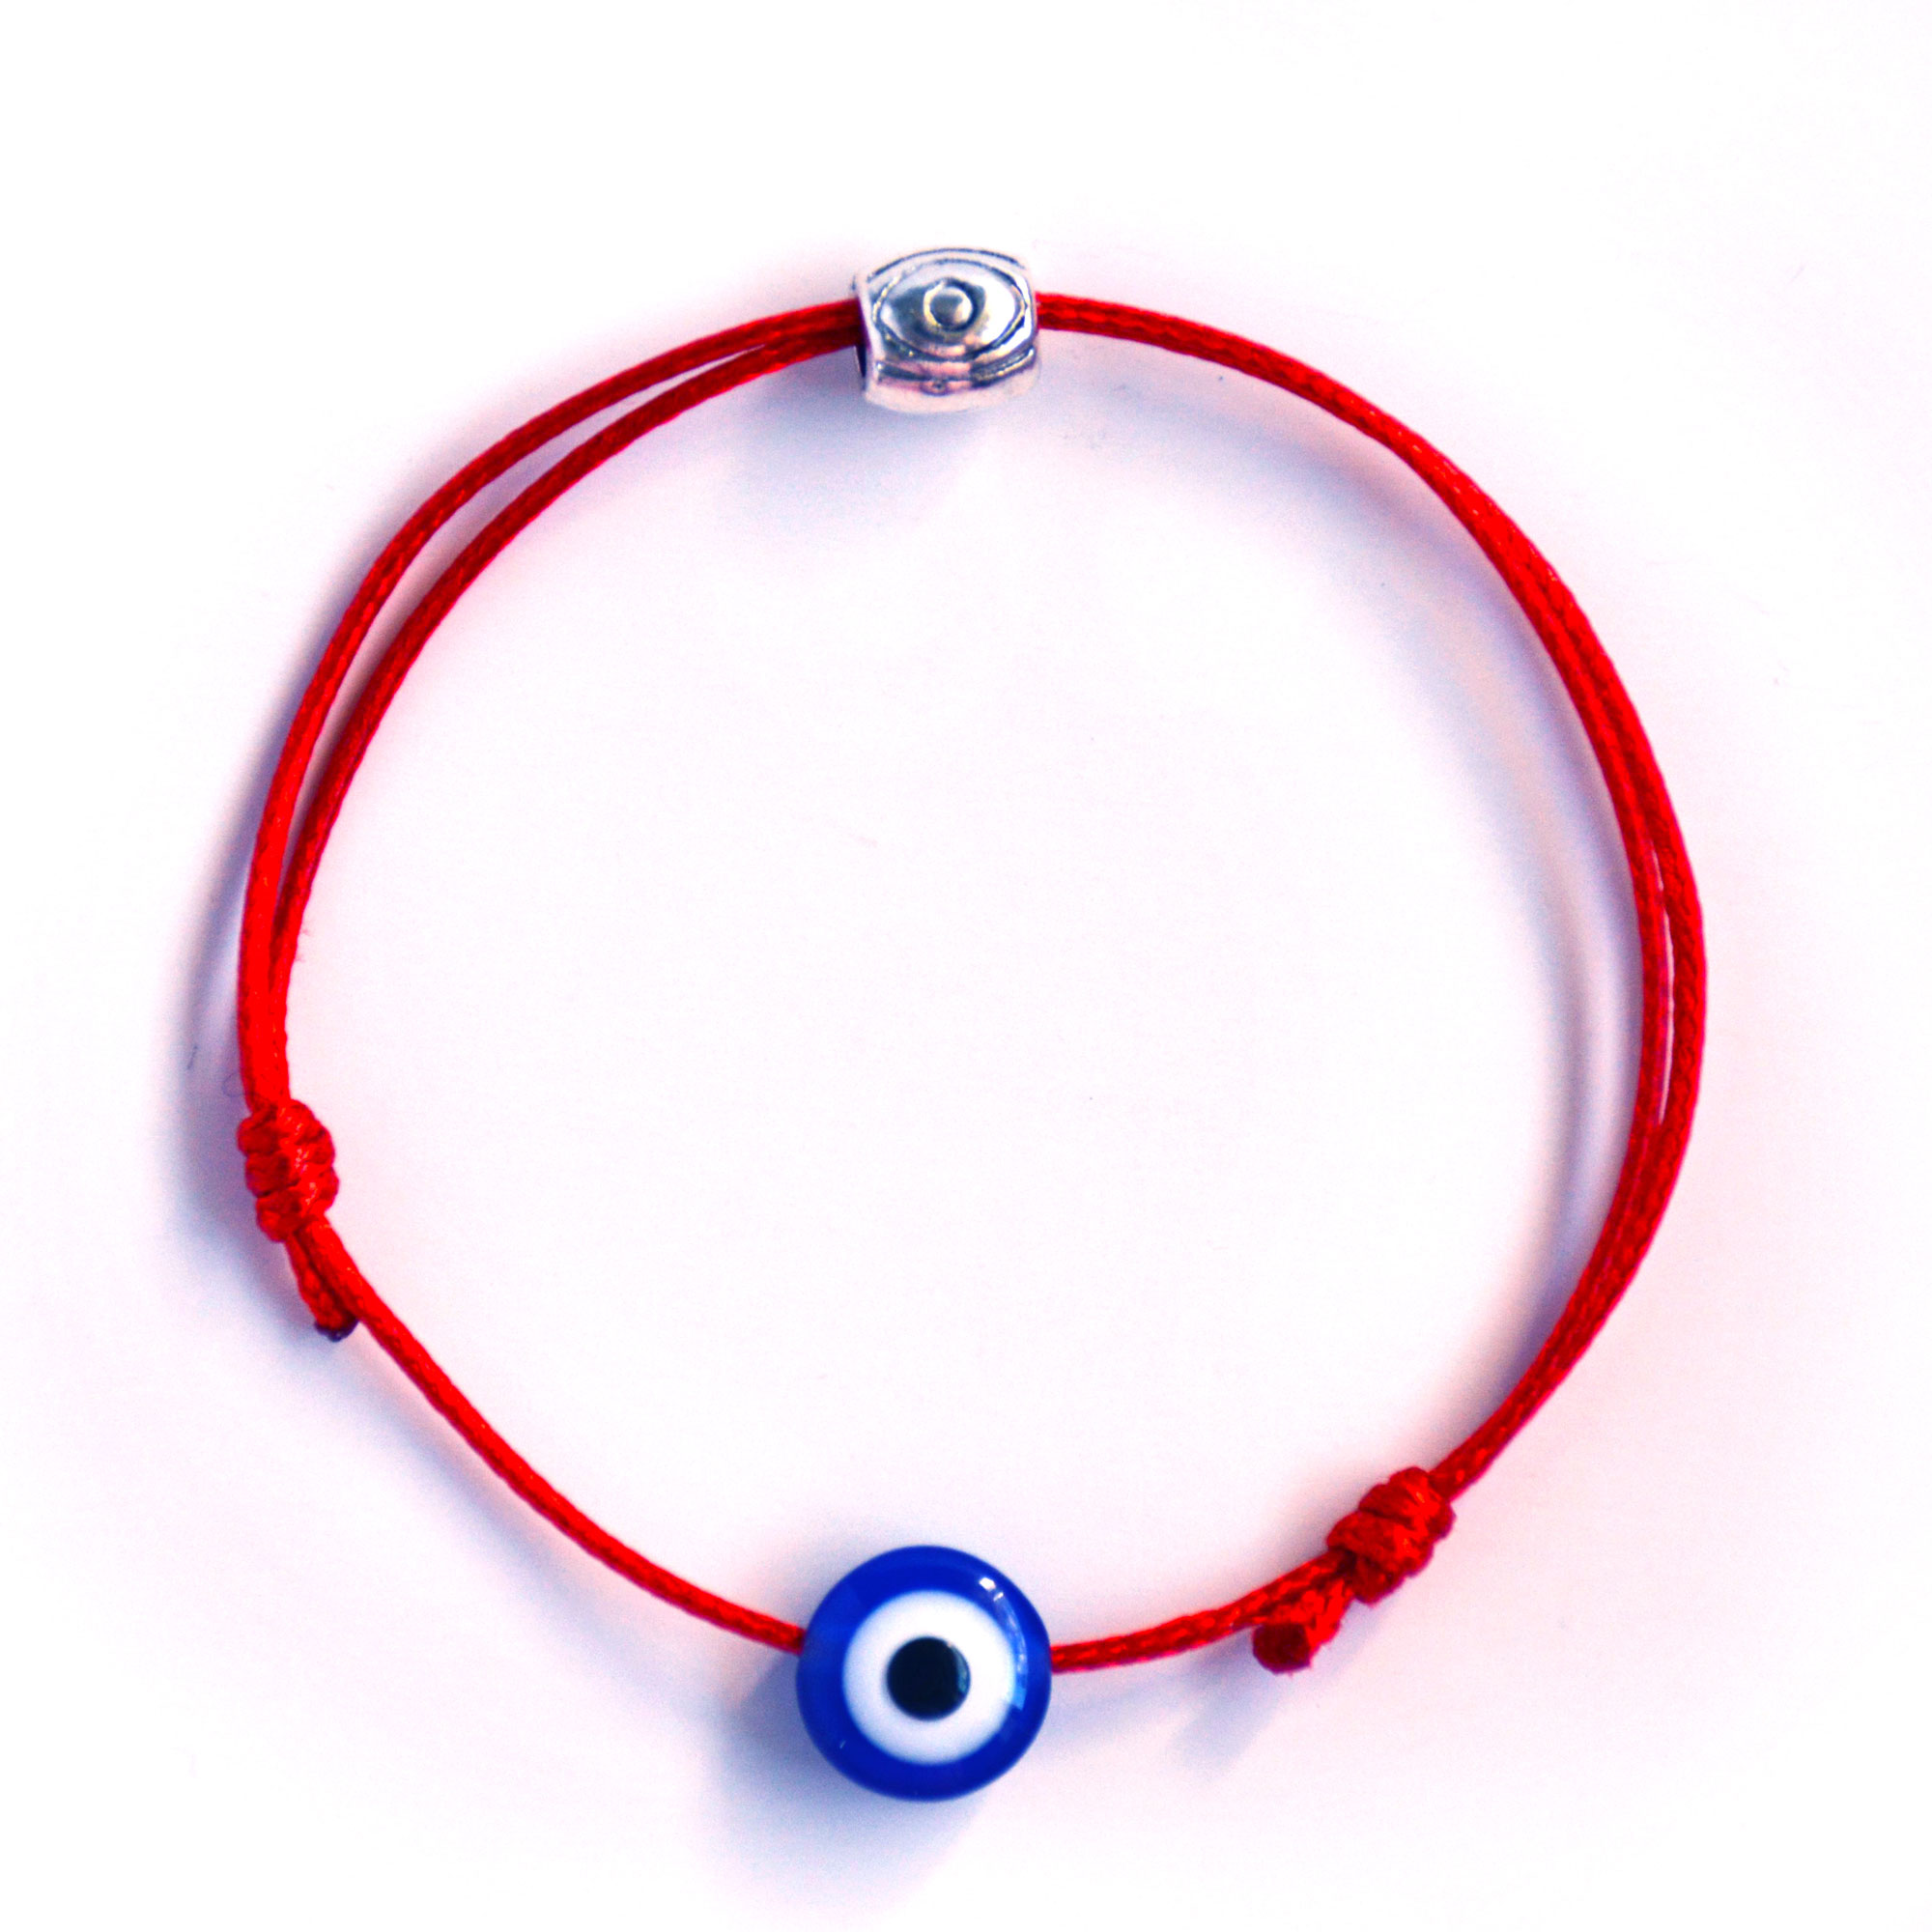 Matimoo Evil Eye Bracelet Deep Red